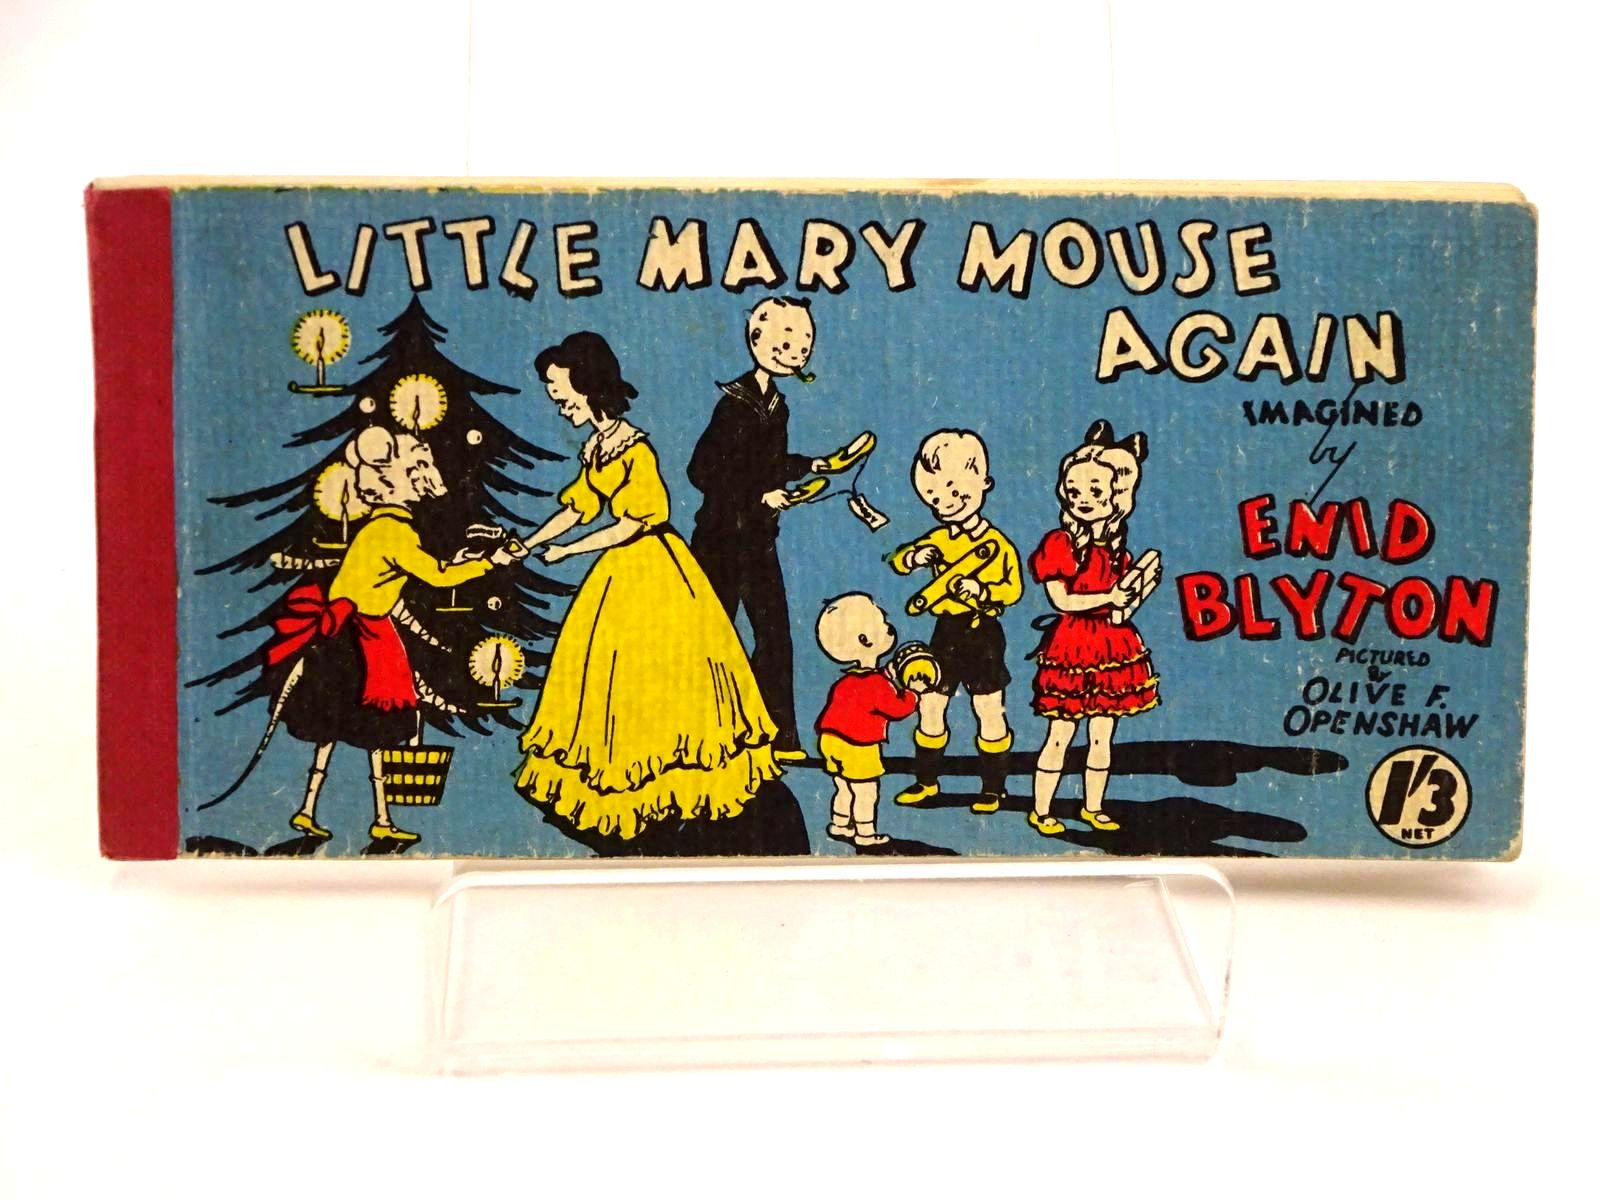 Photo of LITTLE MARY MOUSE AGAIN written by Blyton, Enid illustrated by Openshaw, Olive F. published by Brockhampton Press Ltd. (STOCK CODE: 1318427)  for sale by Stella & Rose's Books